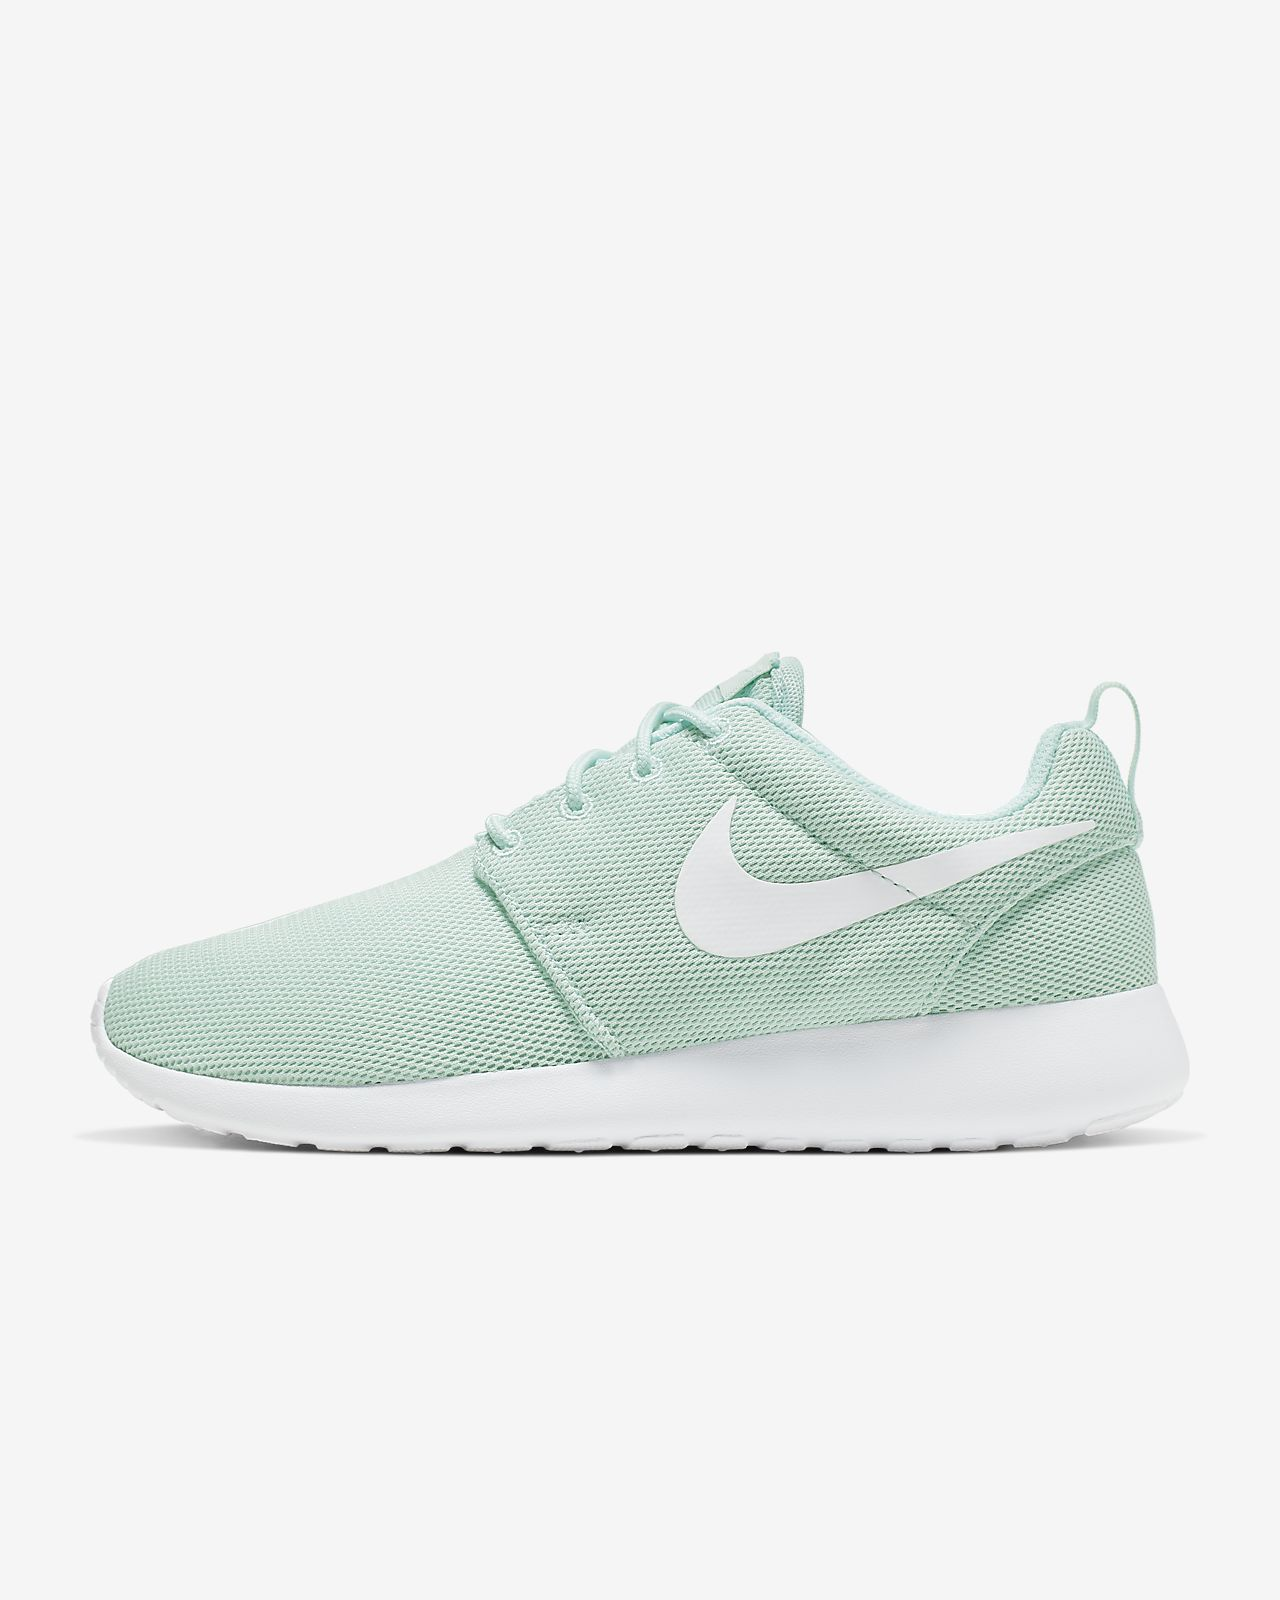 premium selection d0bc9 1027a ... Nike Roshe One Women s Shoe